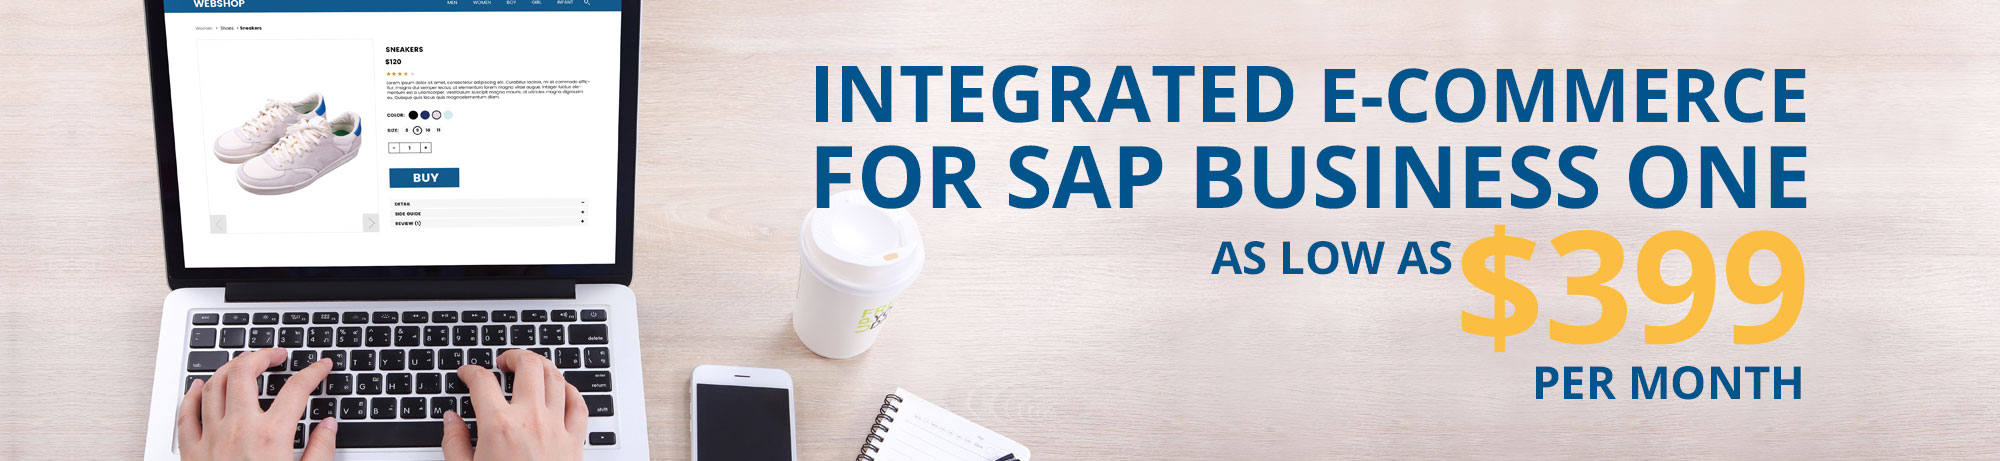 Integrated e-commerce for SAP Business One